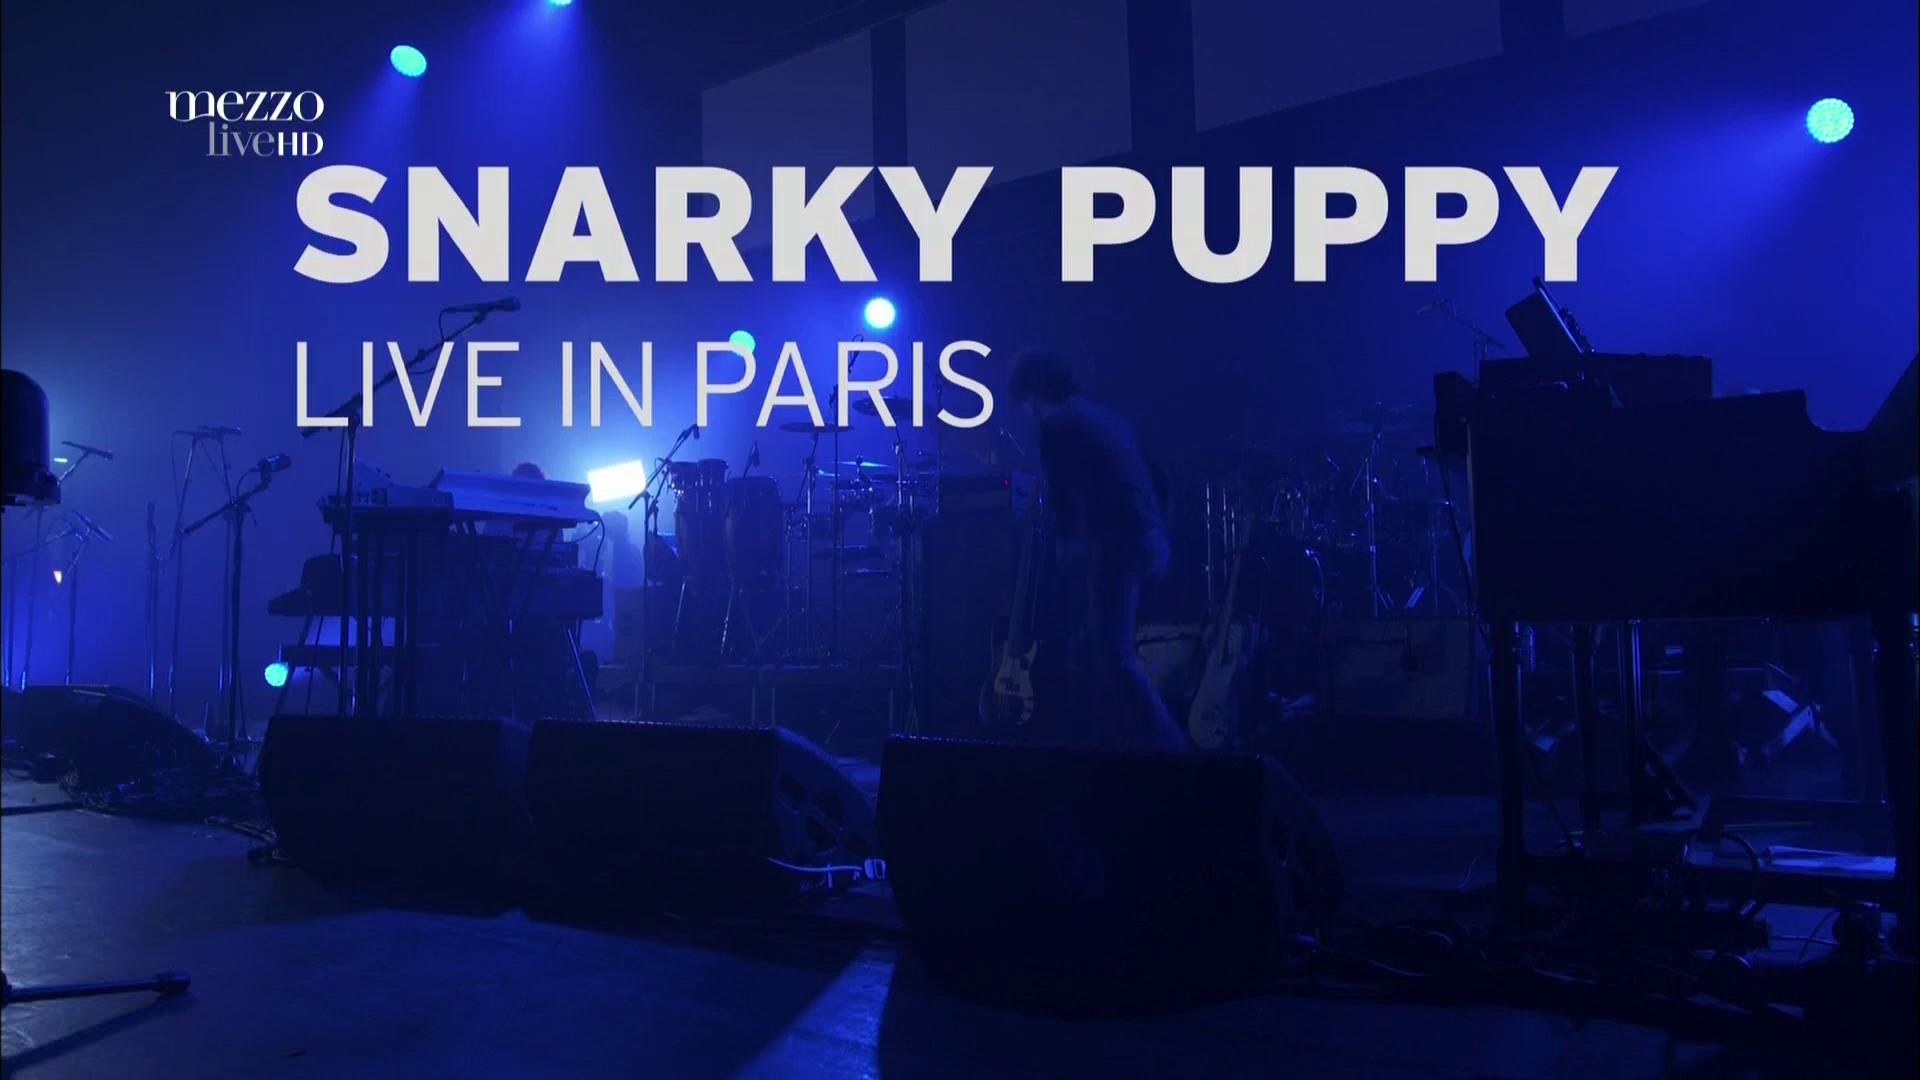 2017 Snarky Puppy - Live In Paris [HDTV 1080i] 0